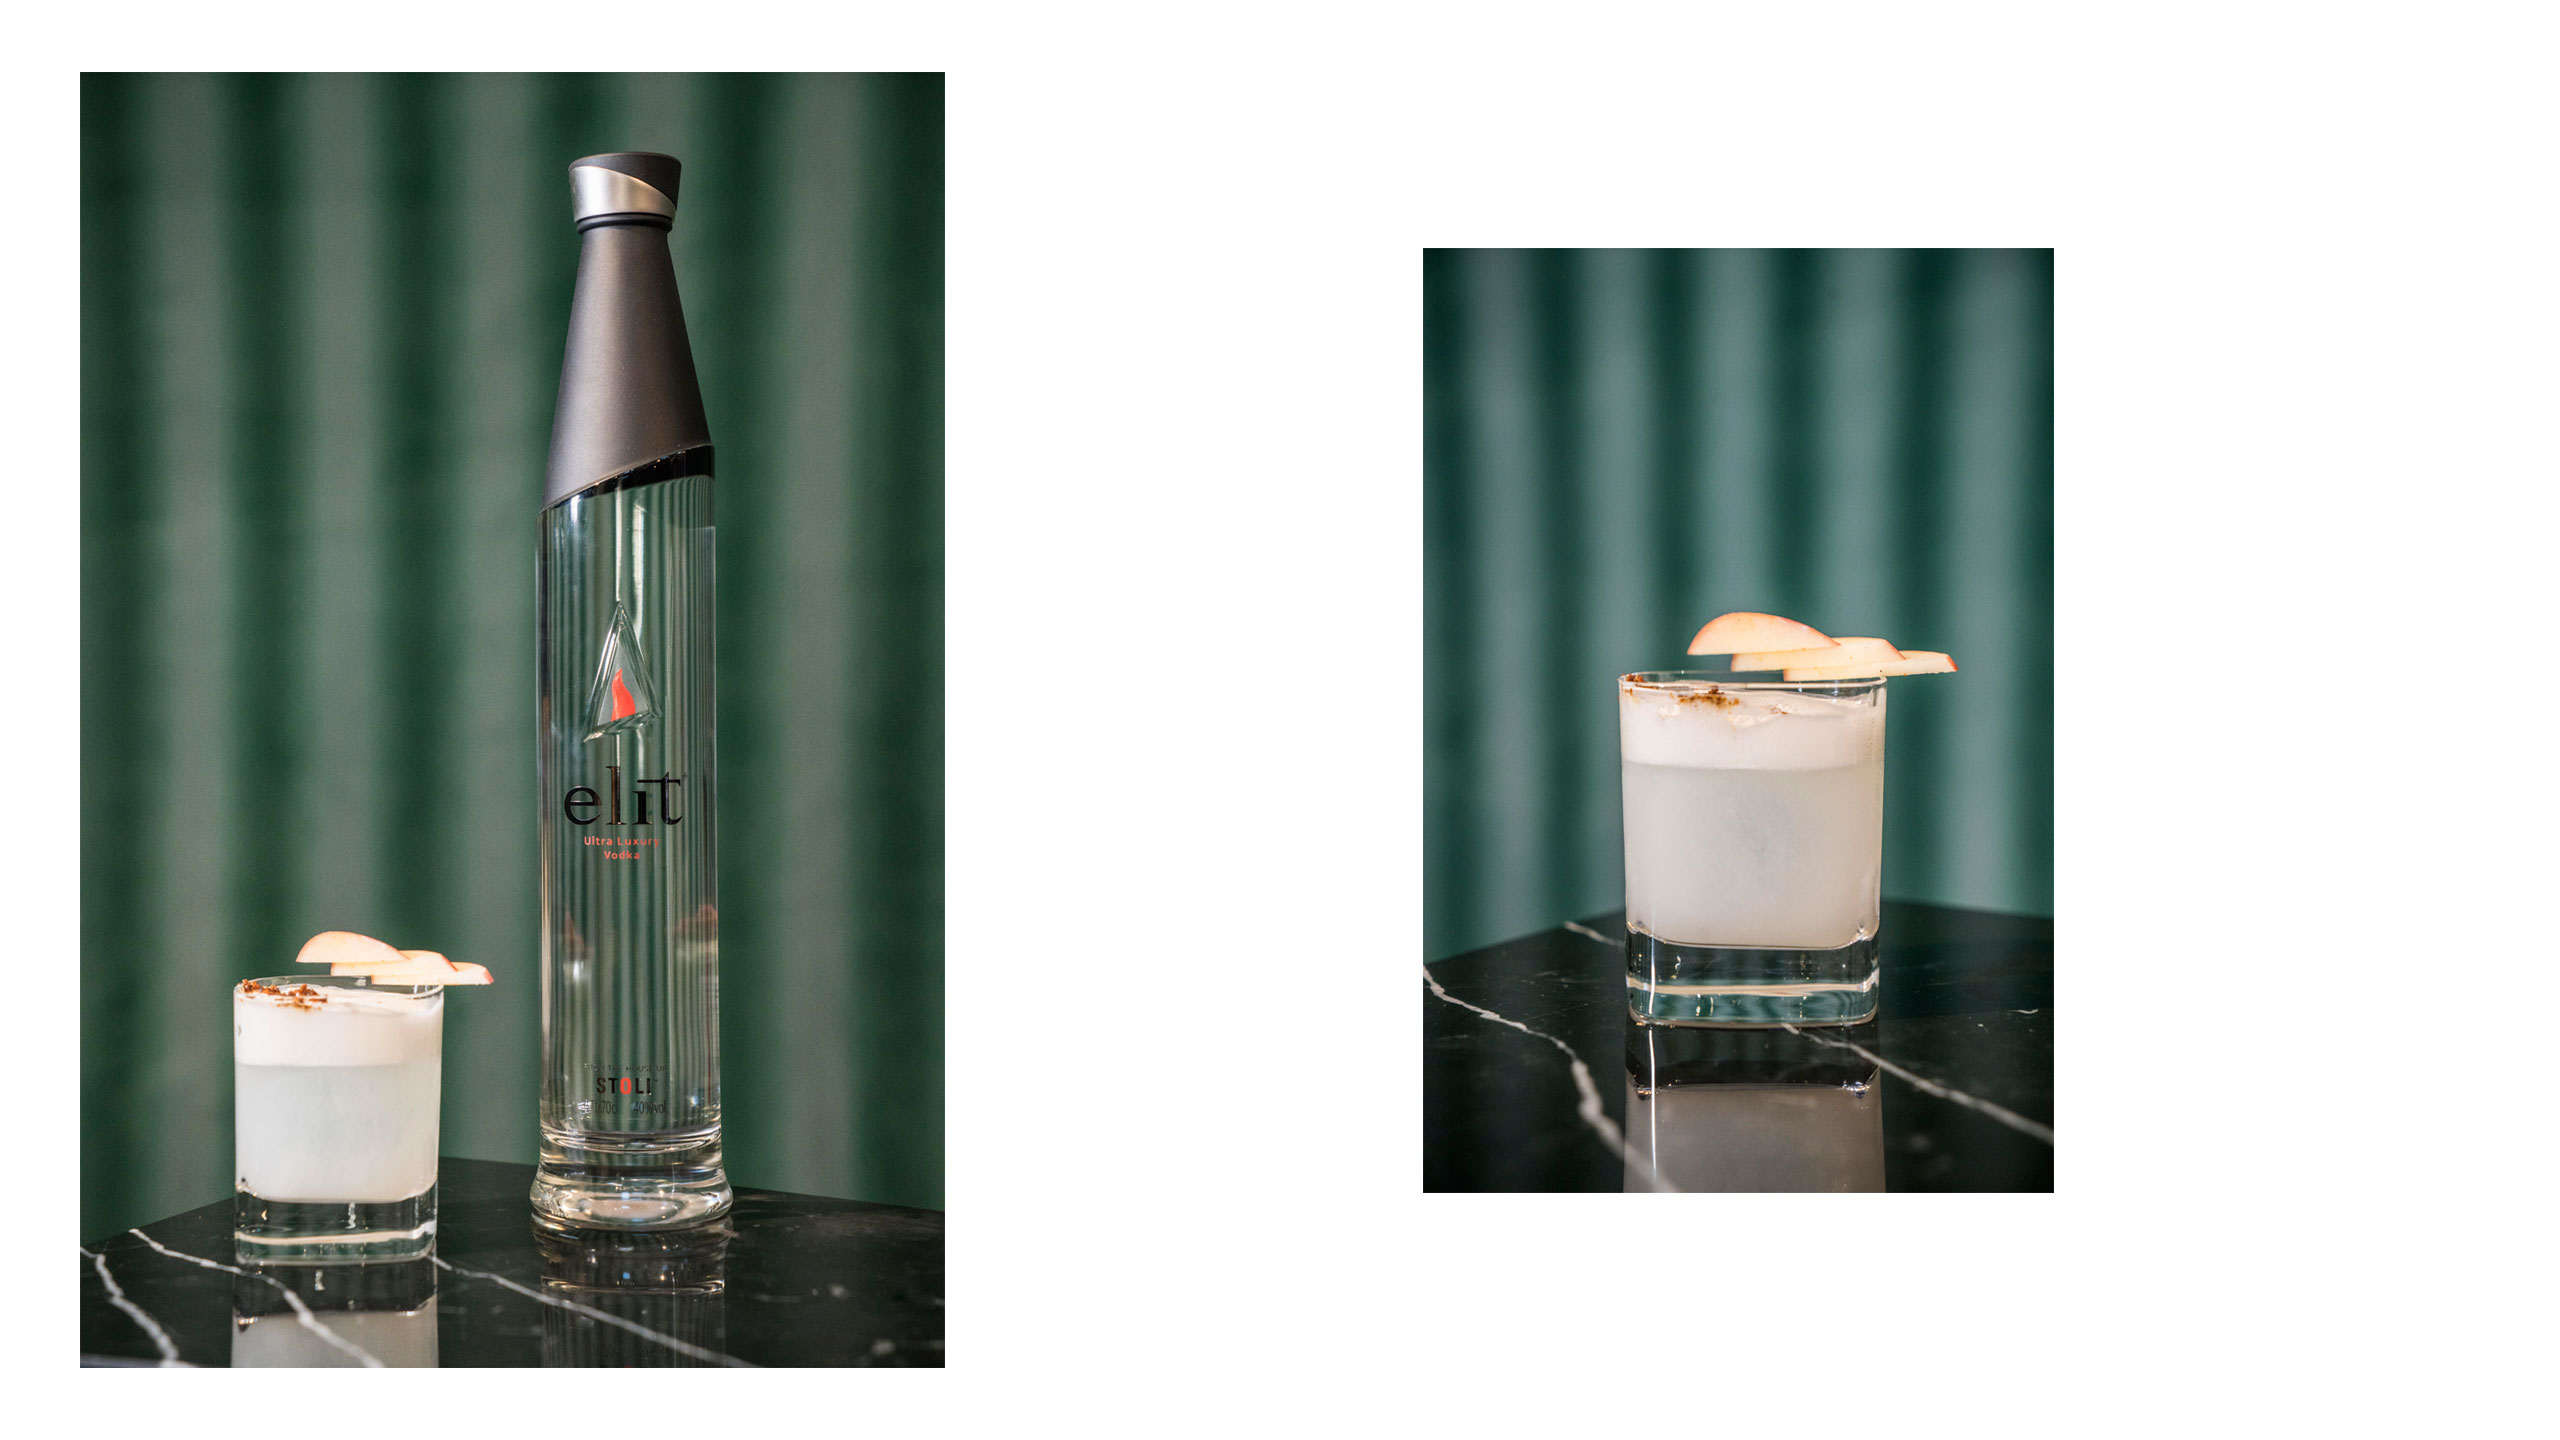 """Object"" by elit® Vodka, inspired by El Lissitzky. Photo © elit® Vodka."